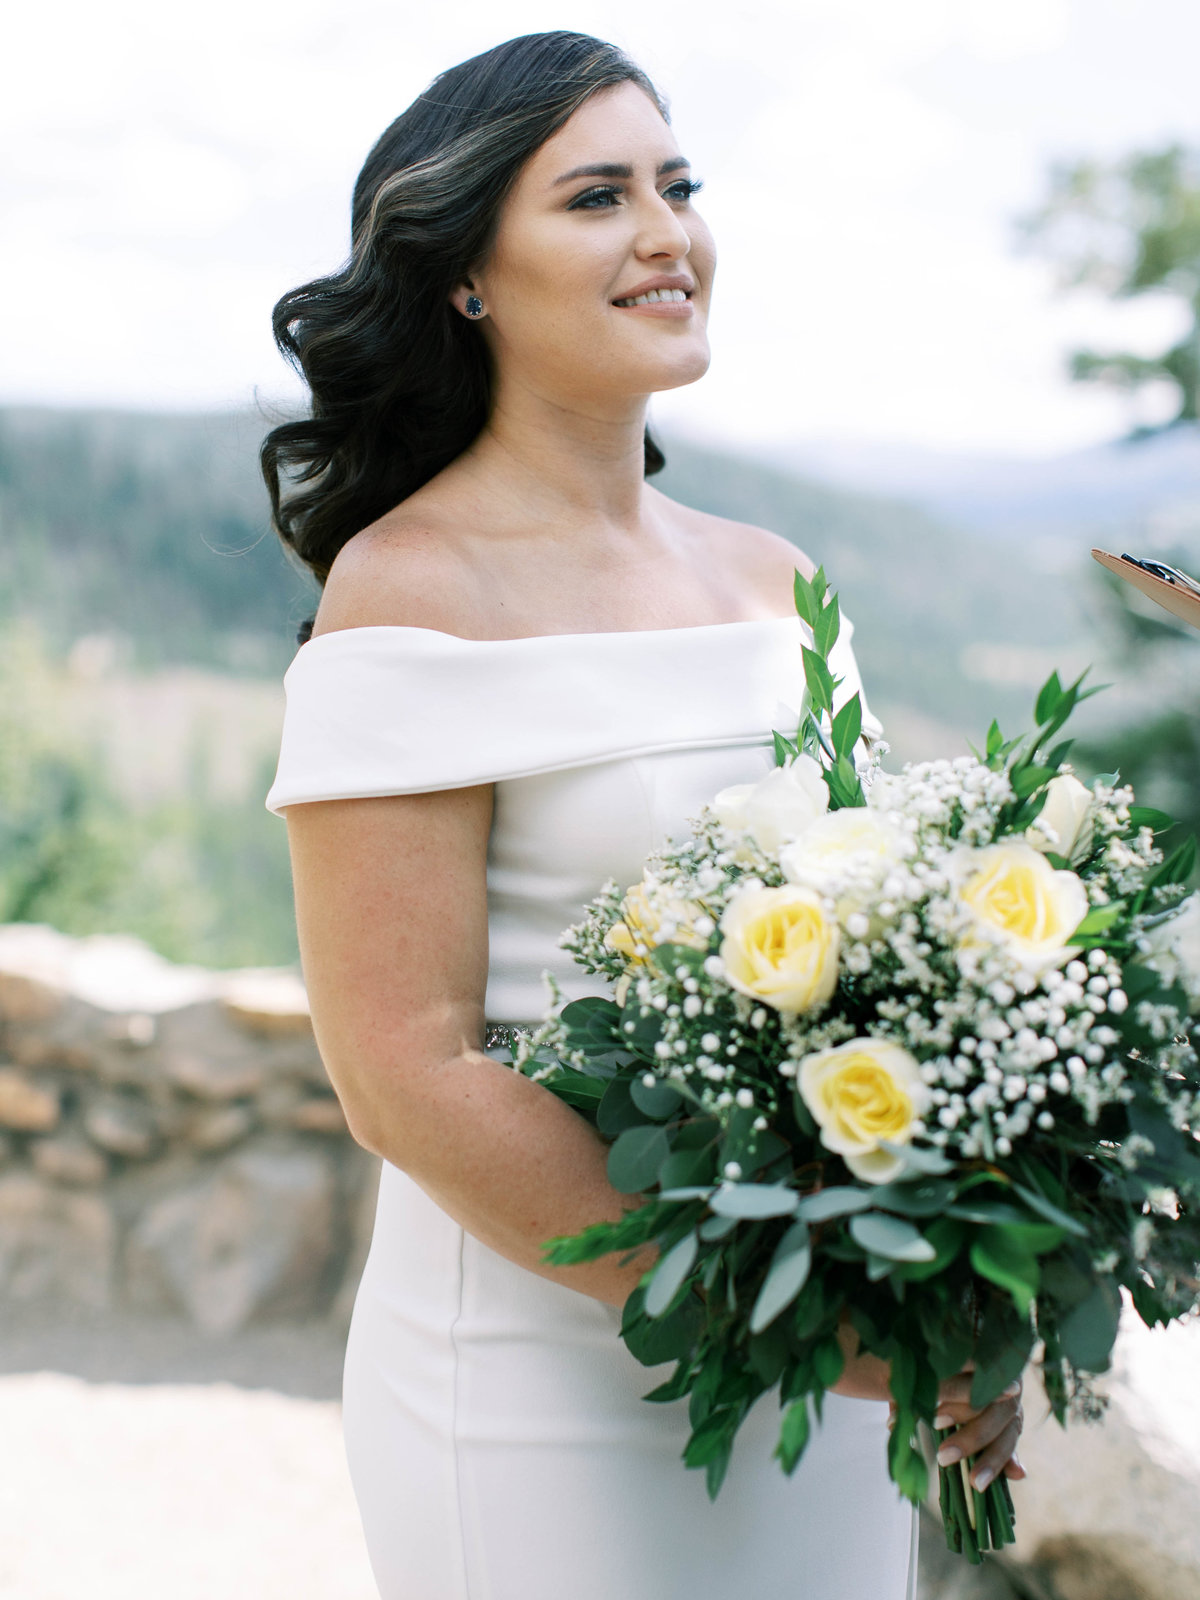 Bride holding her classic romantic bouquet at their Breckenridge wedding